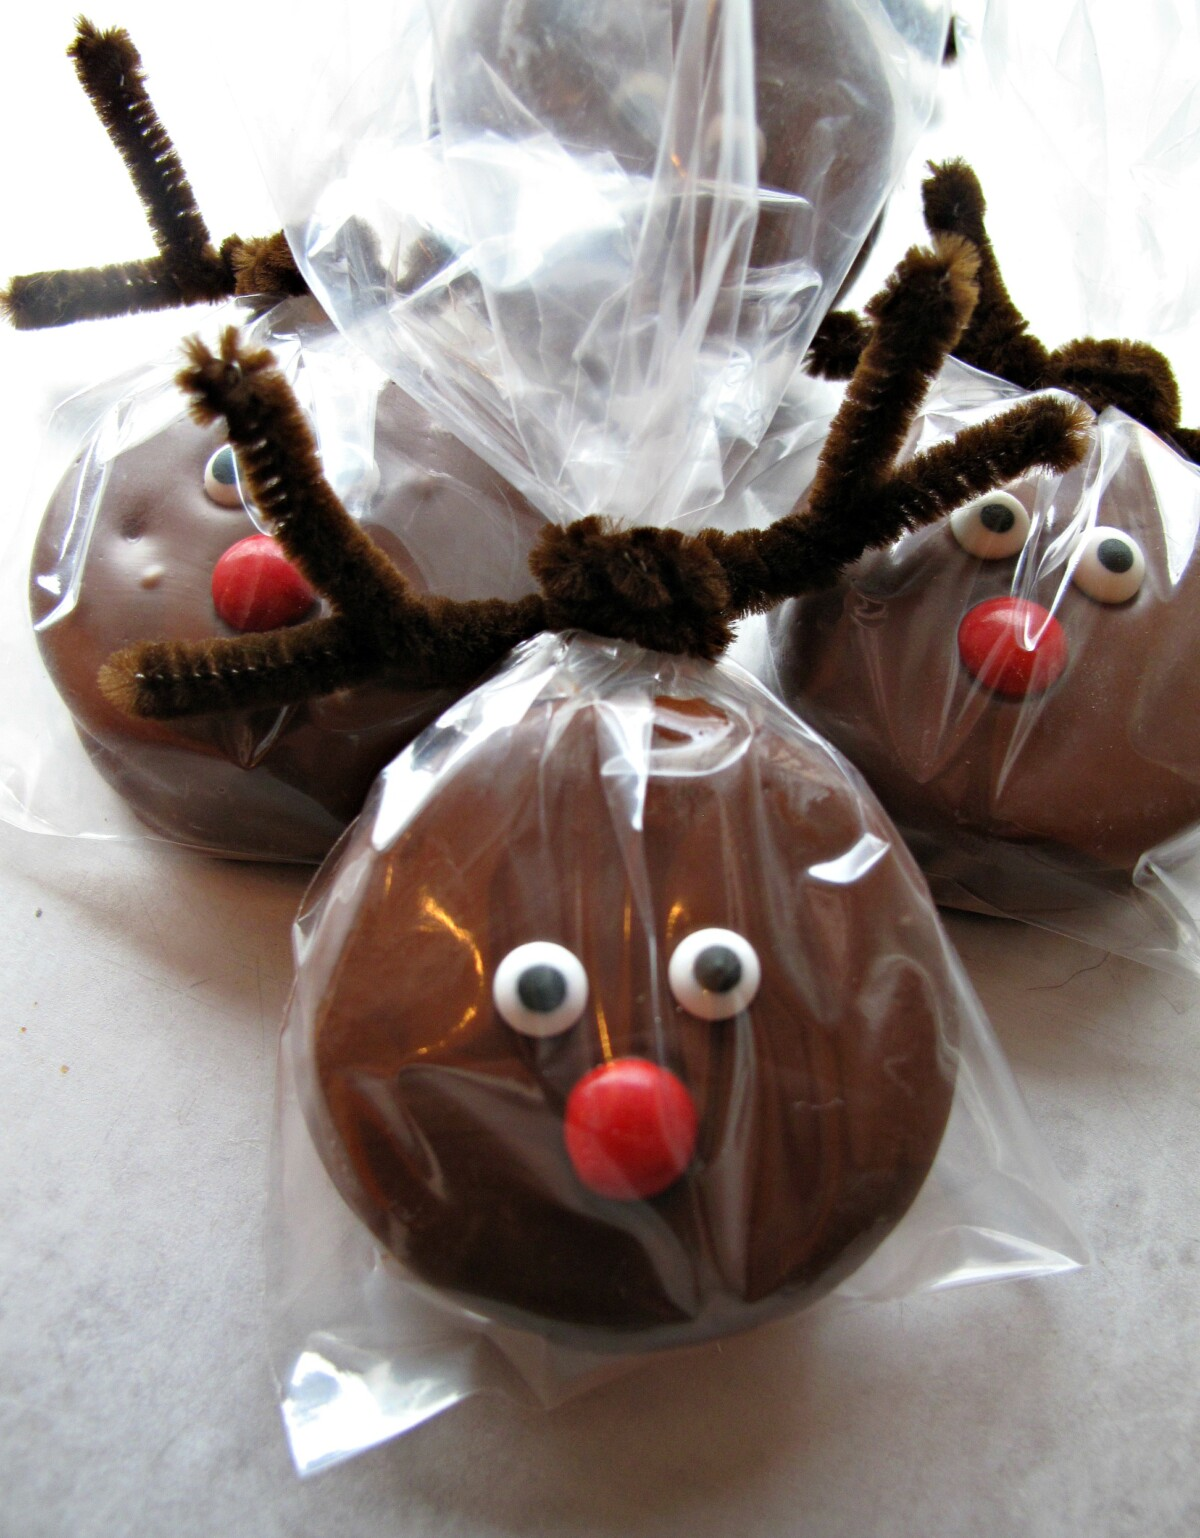 Three Chocolate Covered Oreos decorated to look like Rudolph the Red Nosed Reindeer.